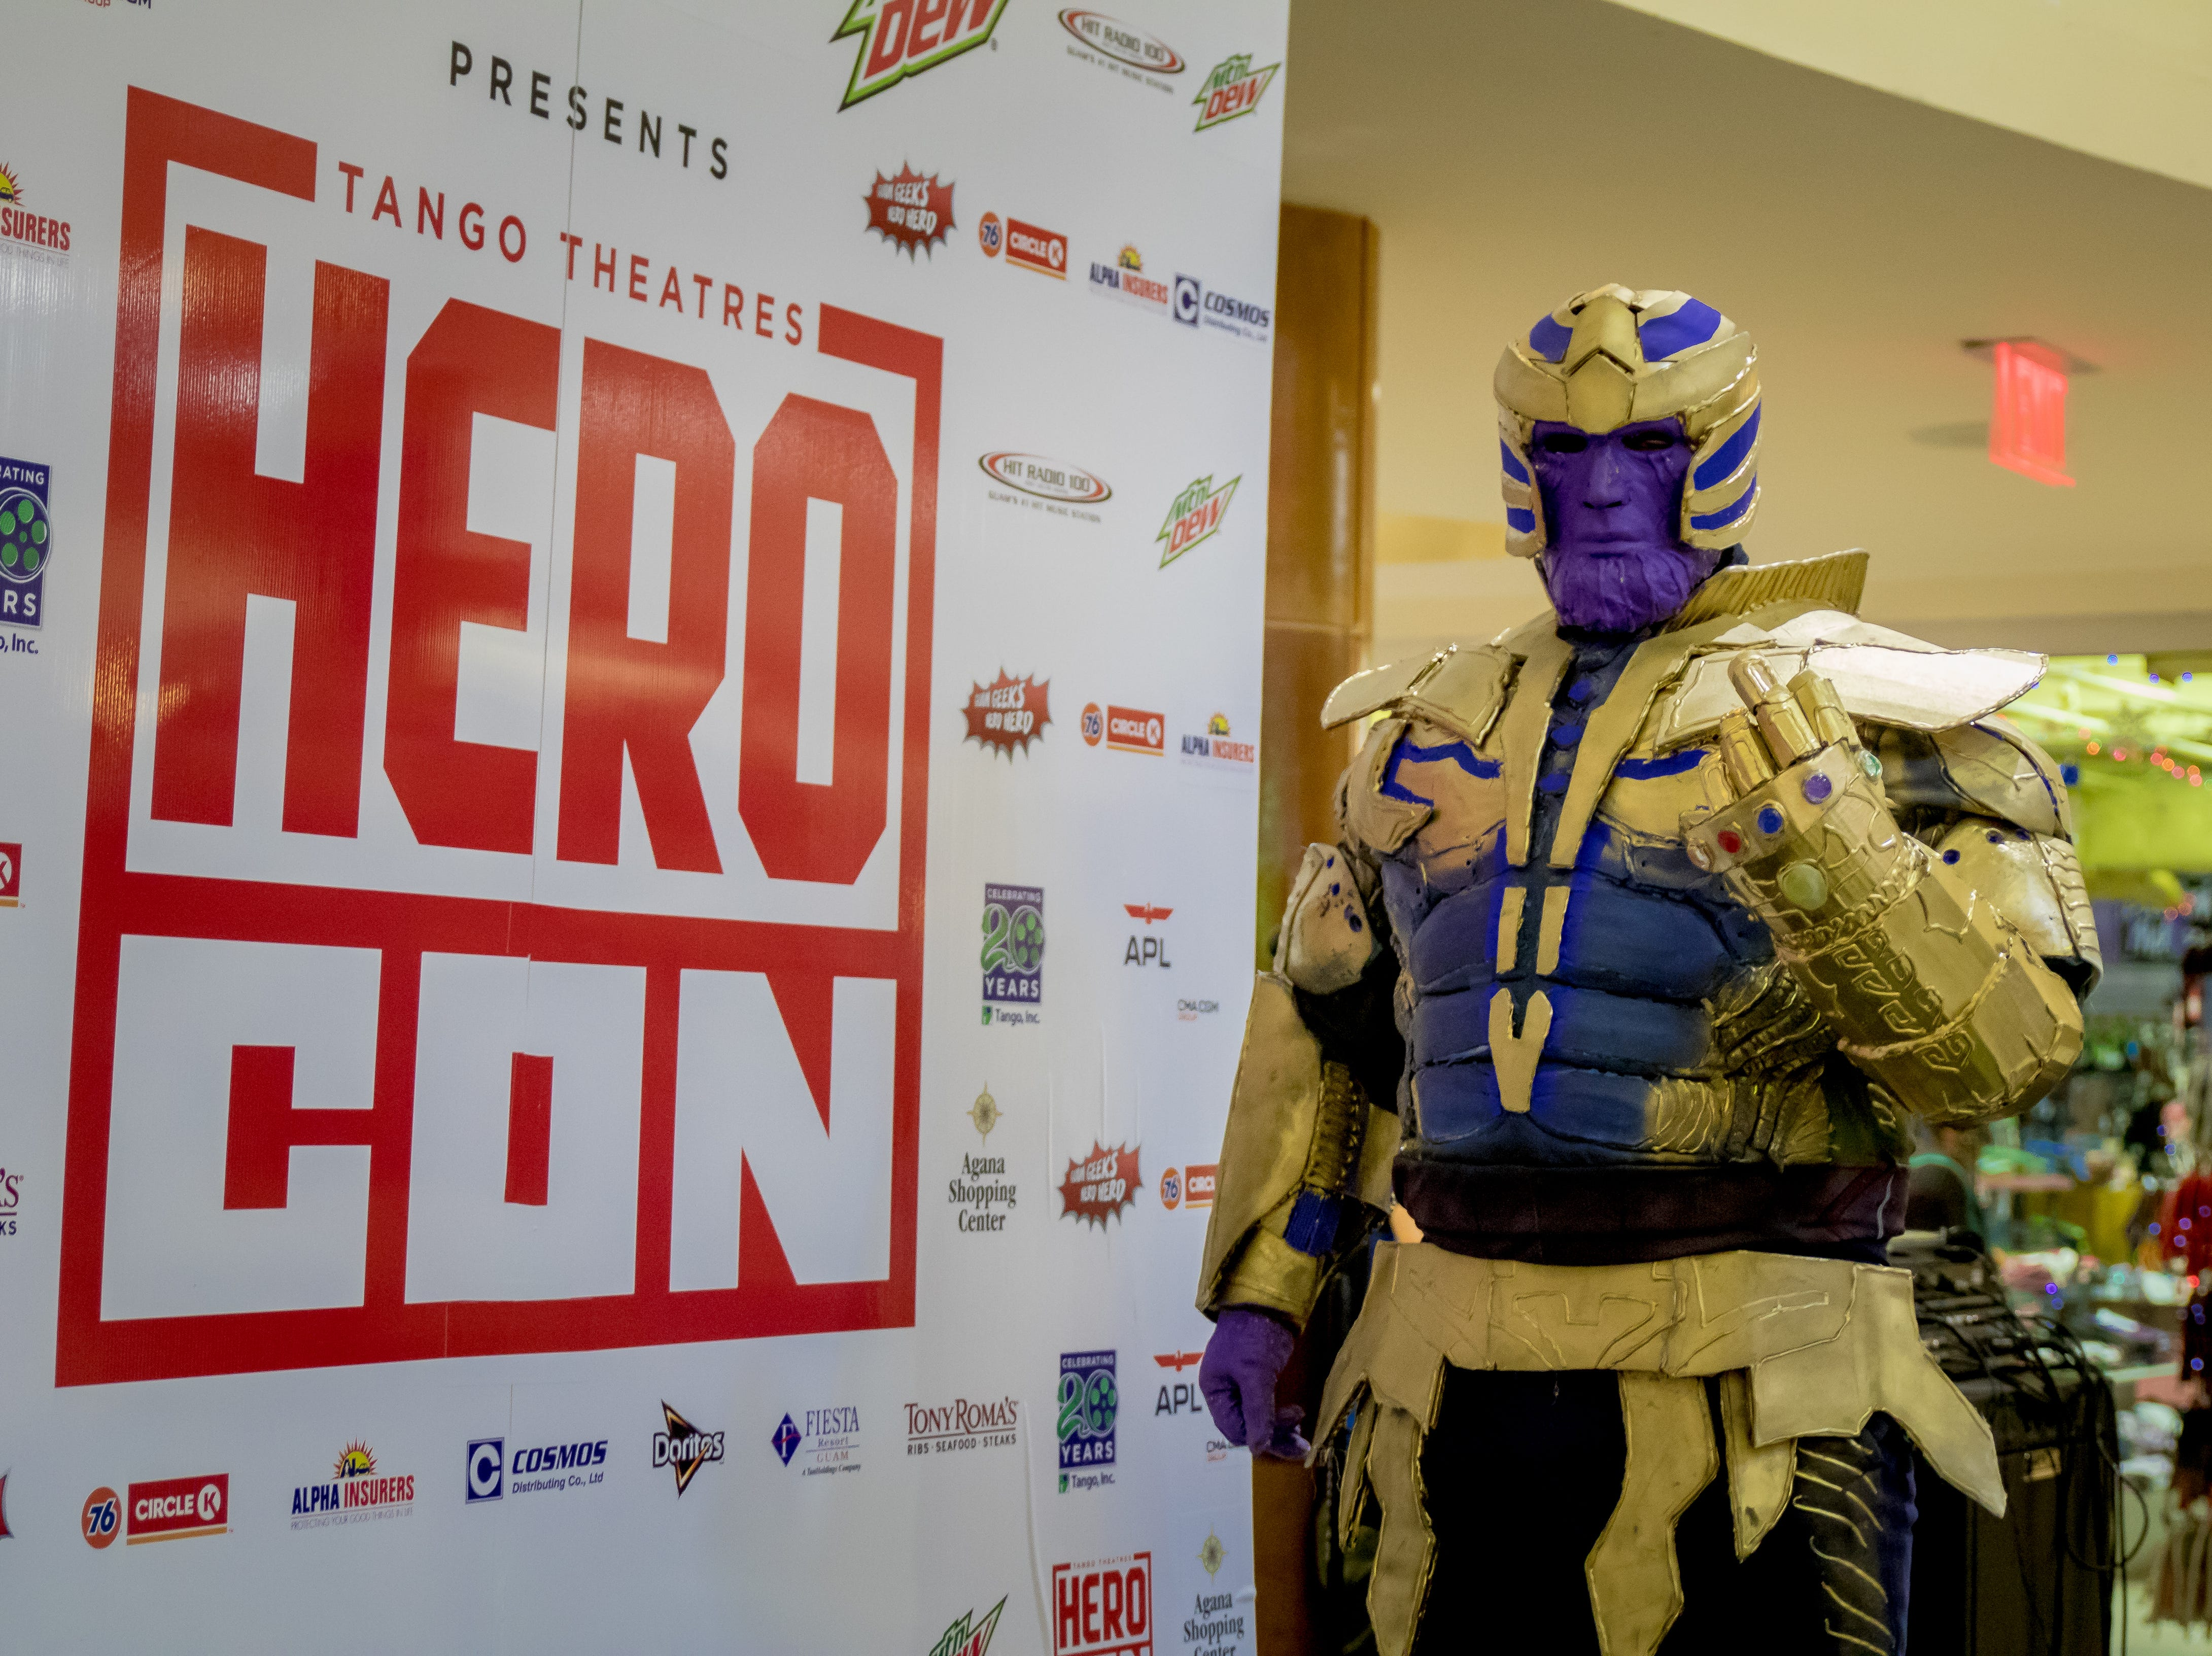 Zachary Salas cosplay thanos and pose during the Herocon event held at Agana Shopping Center on Dec. 9.